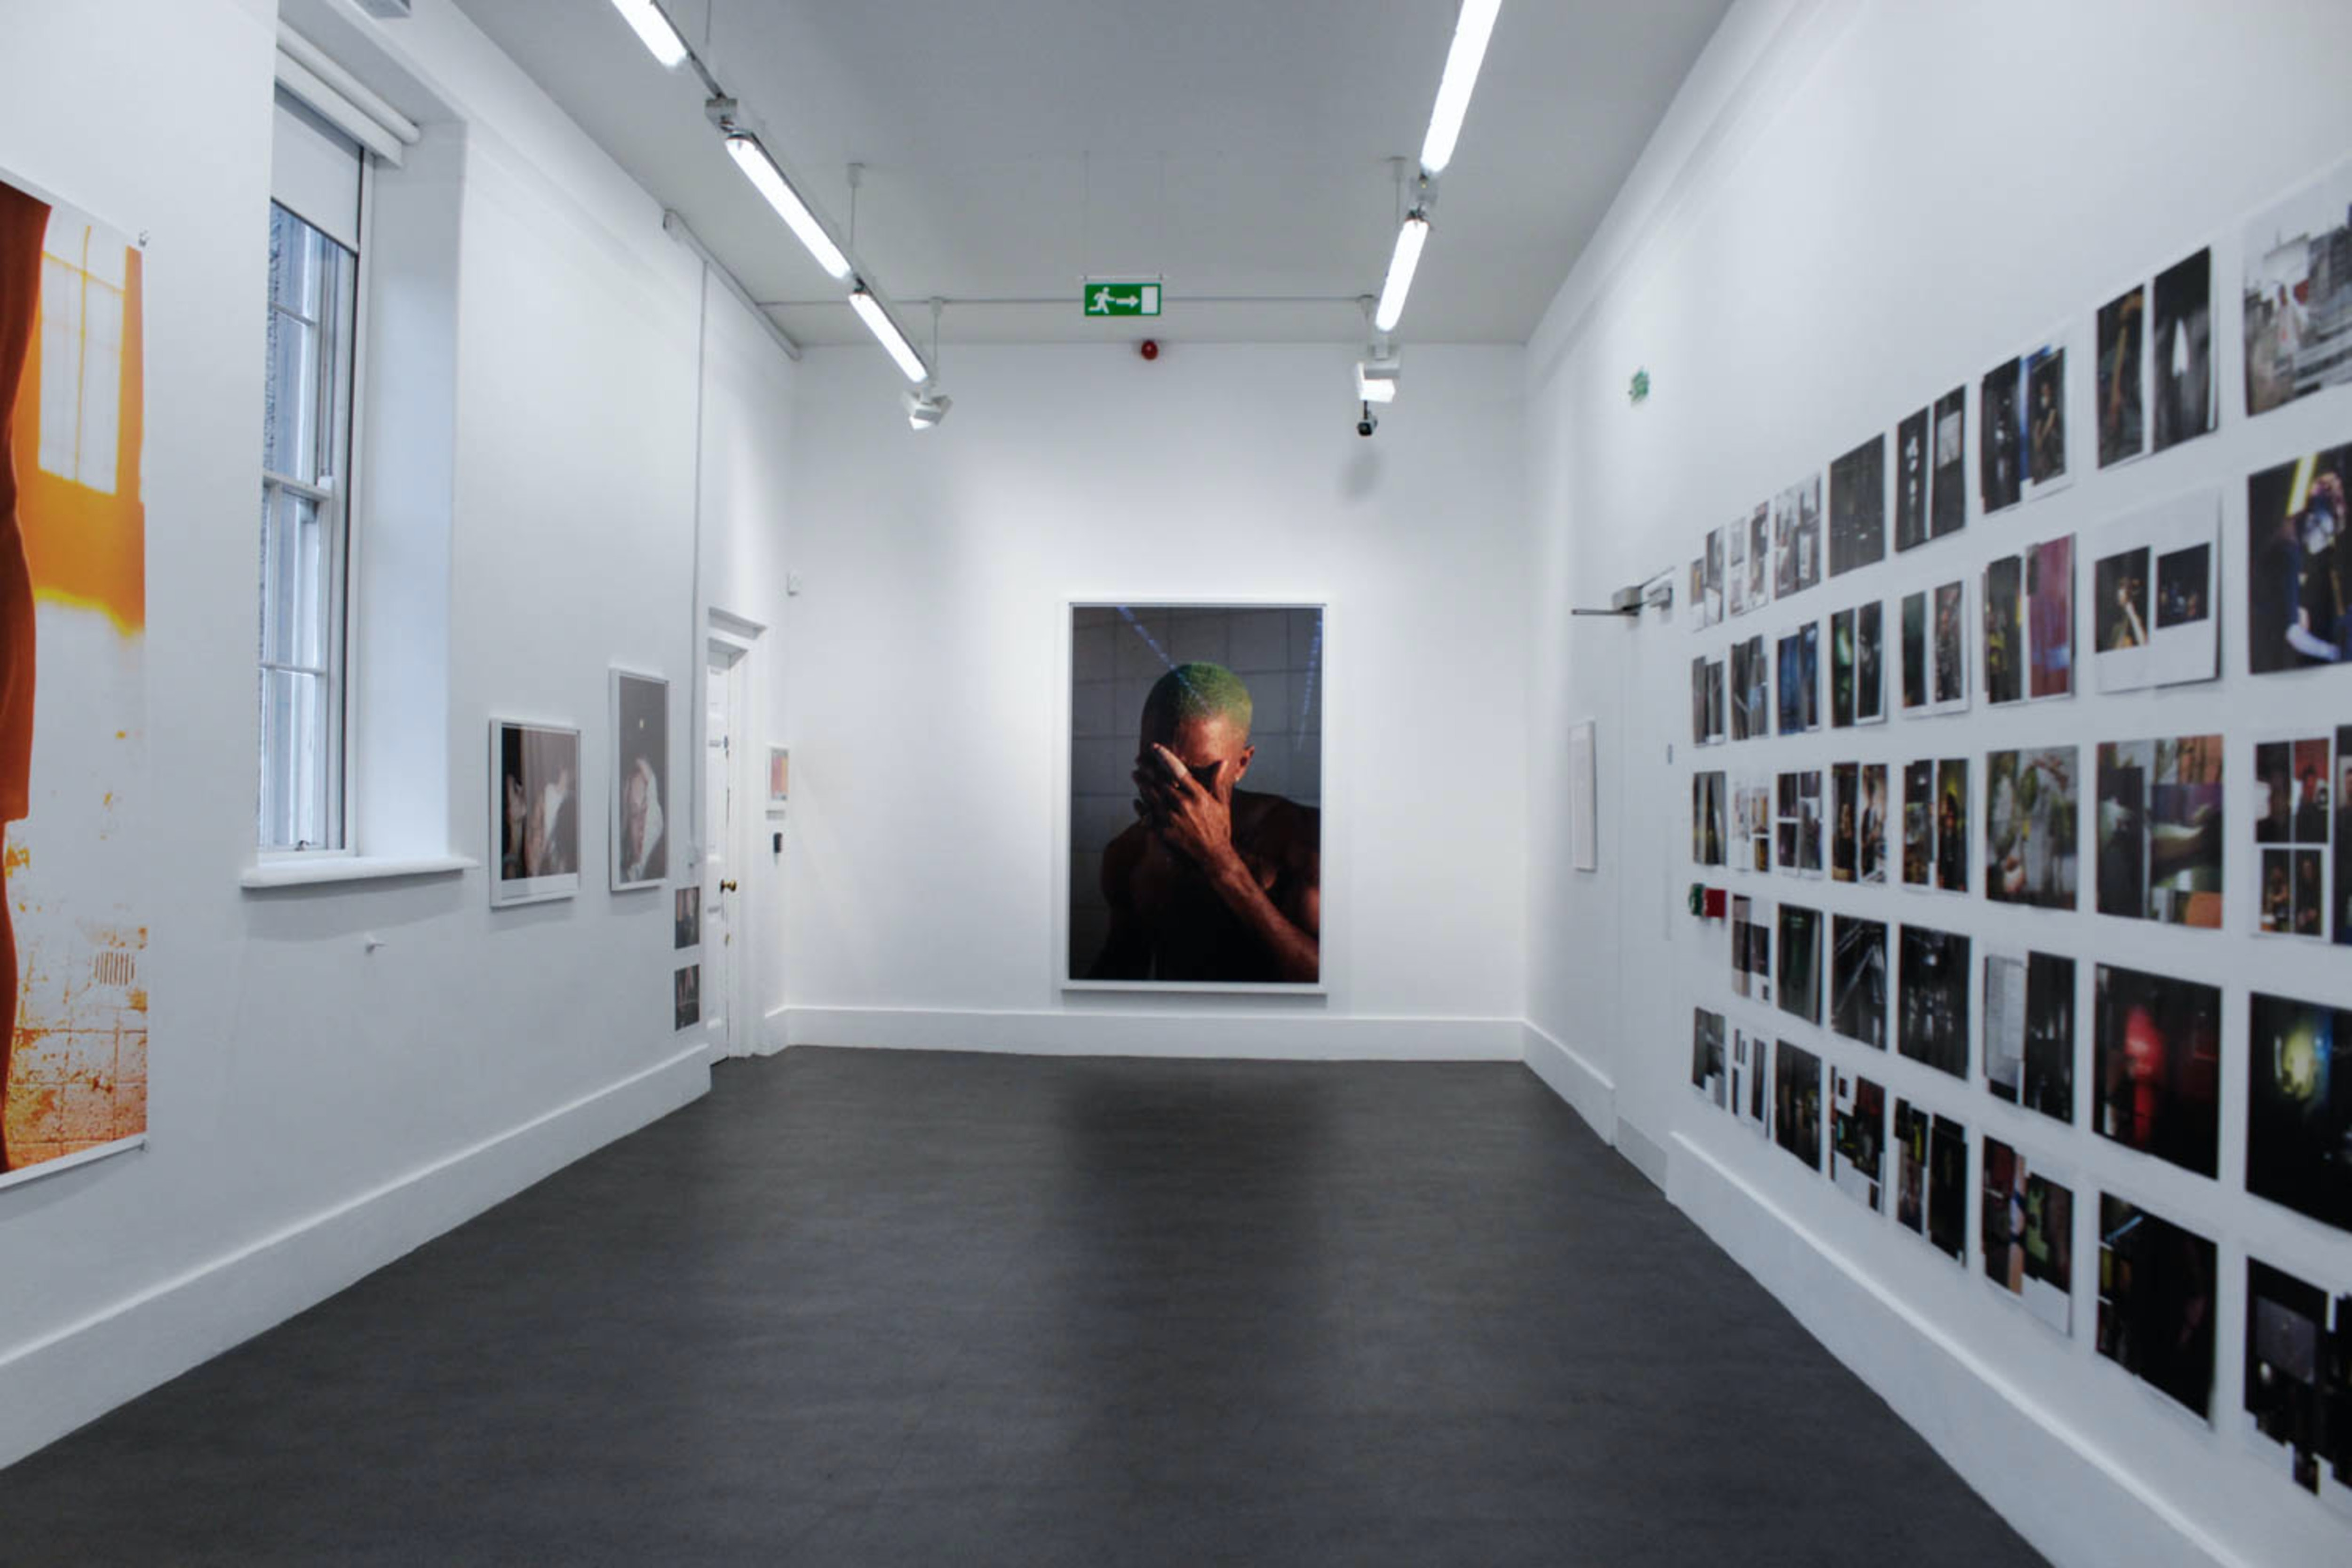 white painted room full of pictures on walls